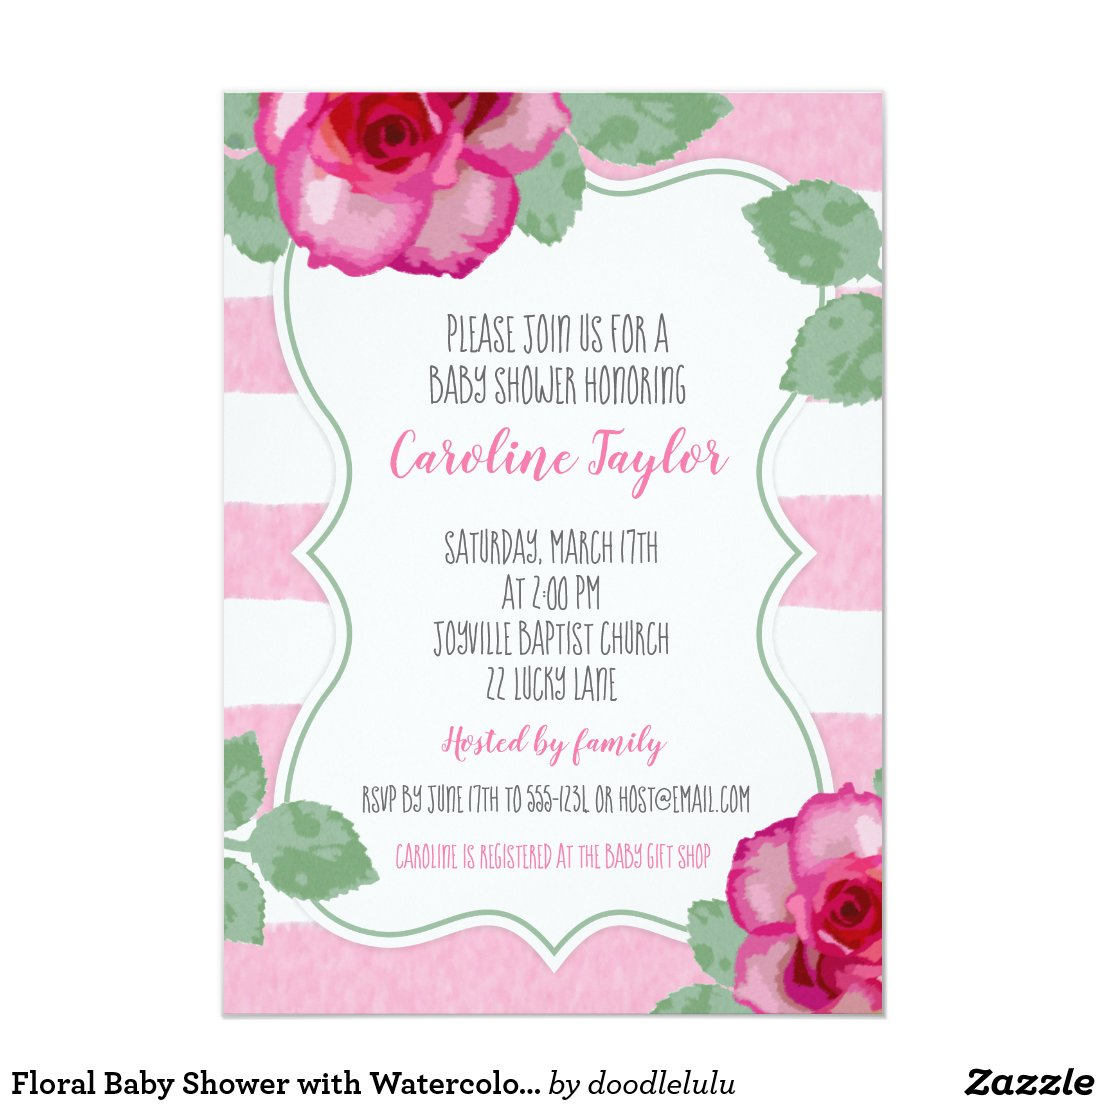 Floral Baby Shower with Watercolor Pink Roses Invitation